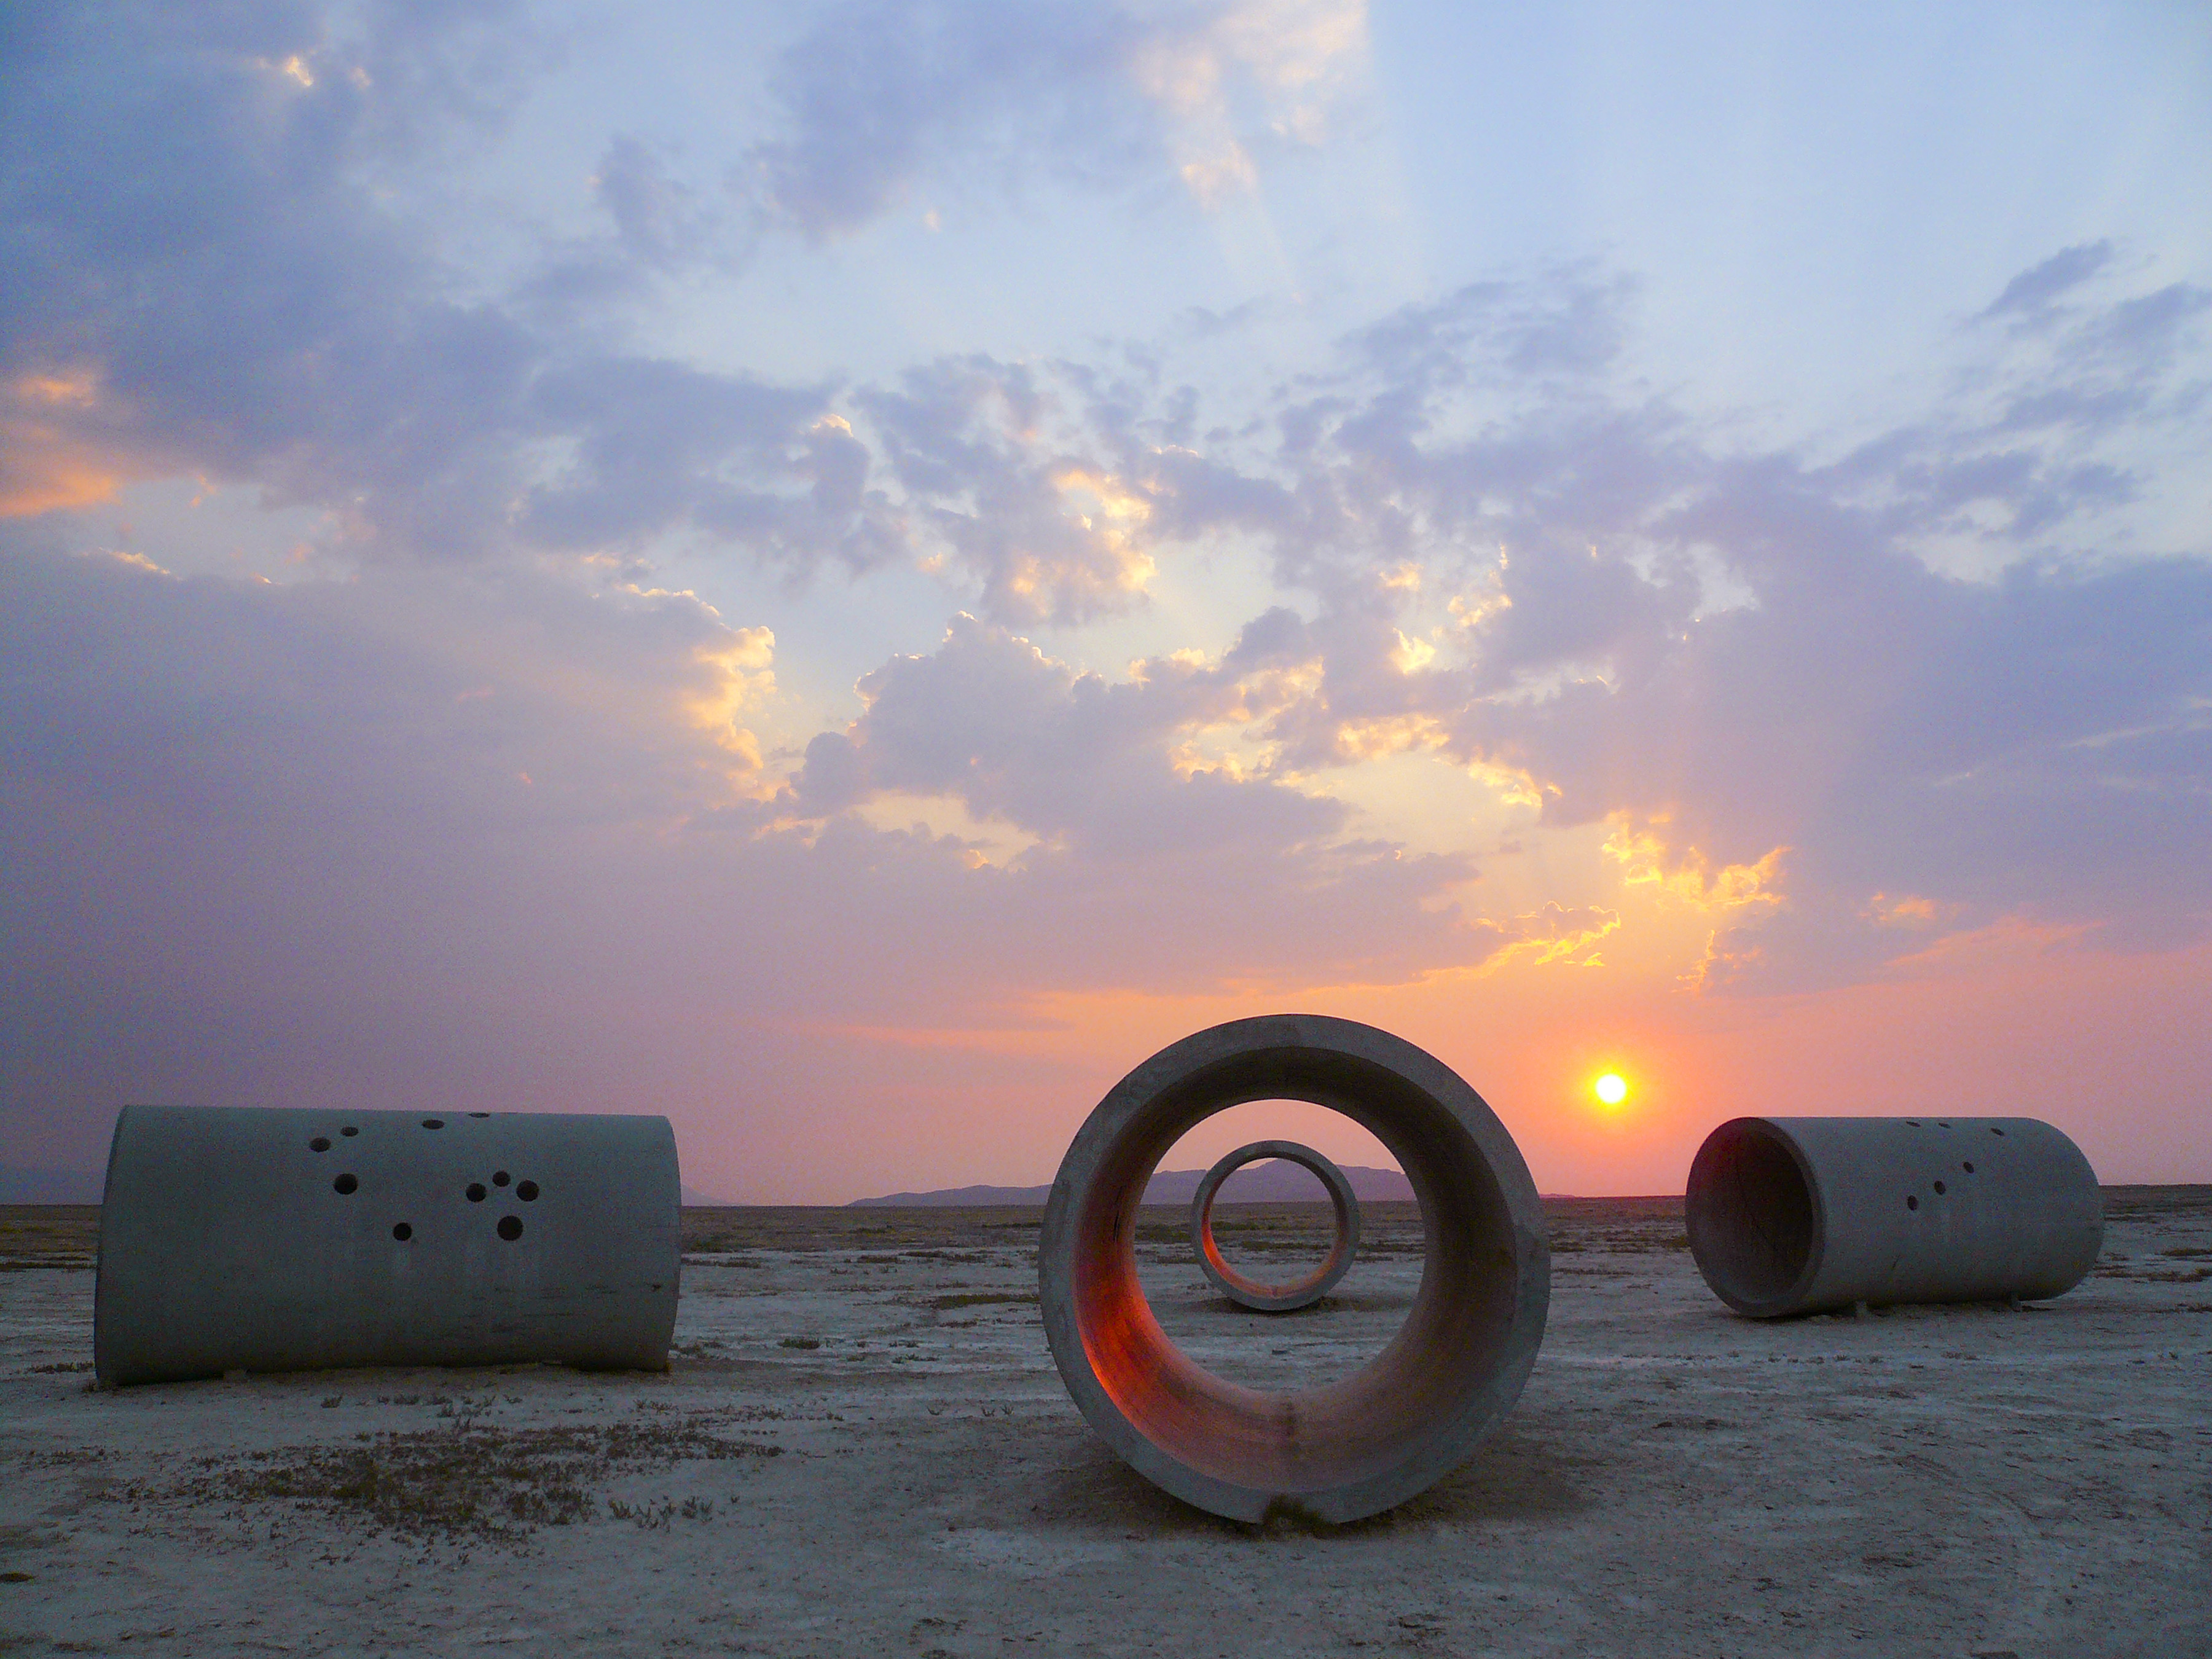 Nancy Holt's Land Art Sculpture 'Sun Tunnels' to Be Conserved by Dia Art Foundation